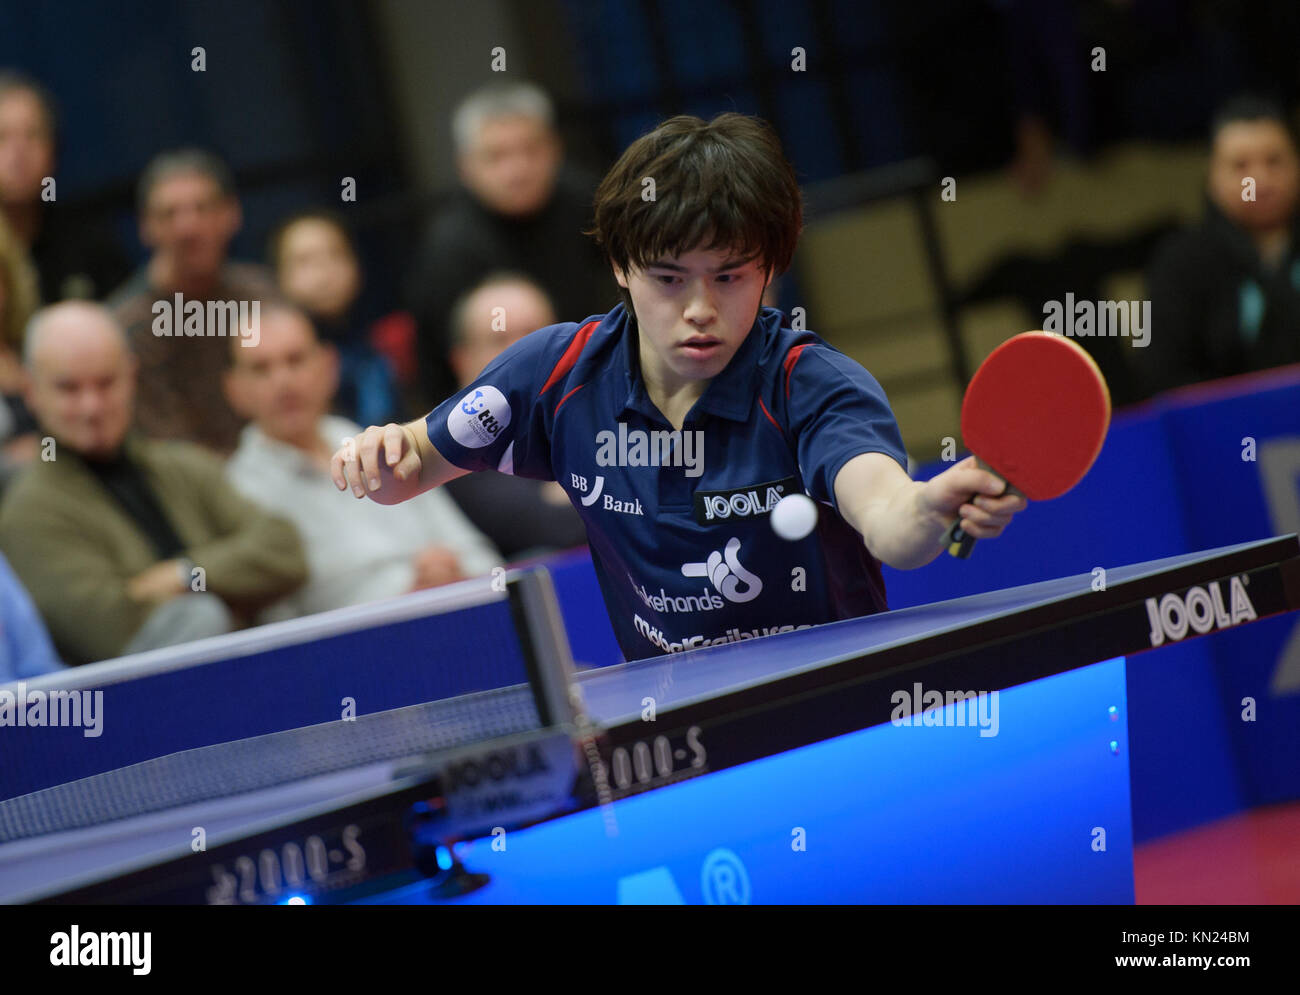 Germany. 10th Dec, 2017. Deutschland. 10th Dec, 2017. Masataka Morizono (Gruenwettersbach). GES/ Tischtennis/ 1. - Stock Image